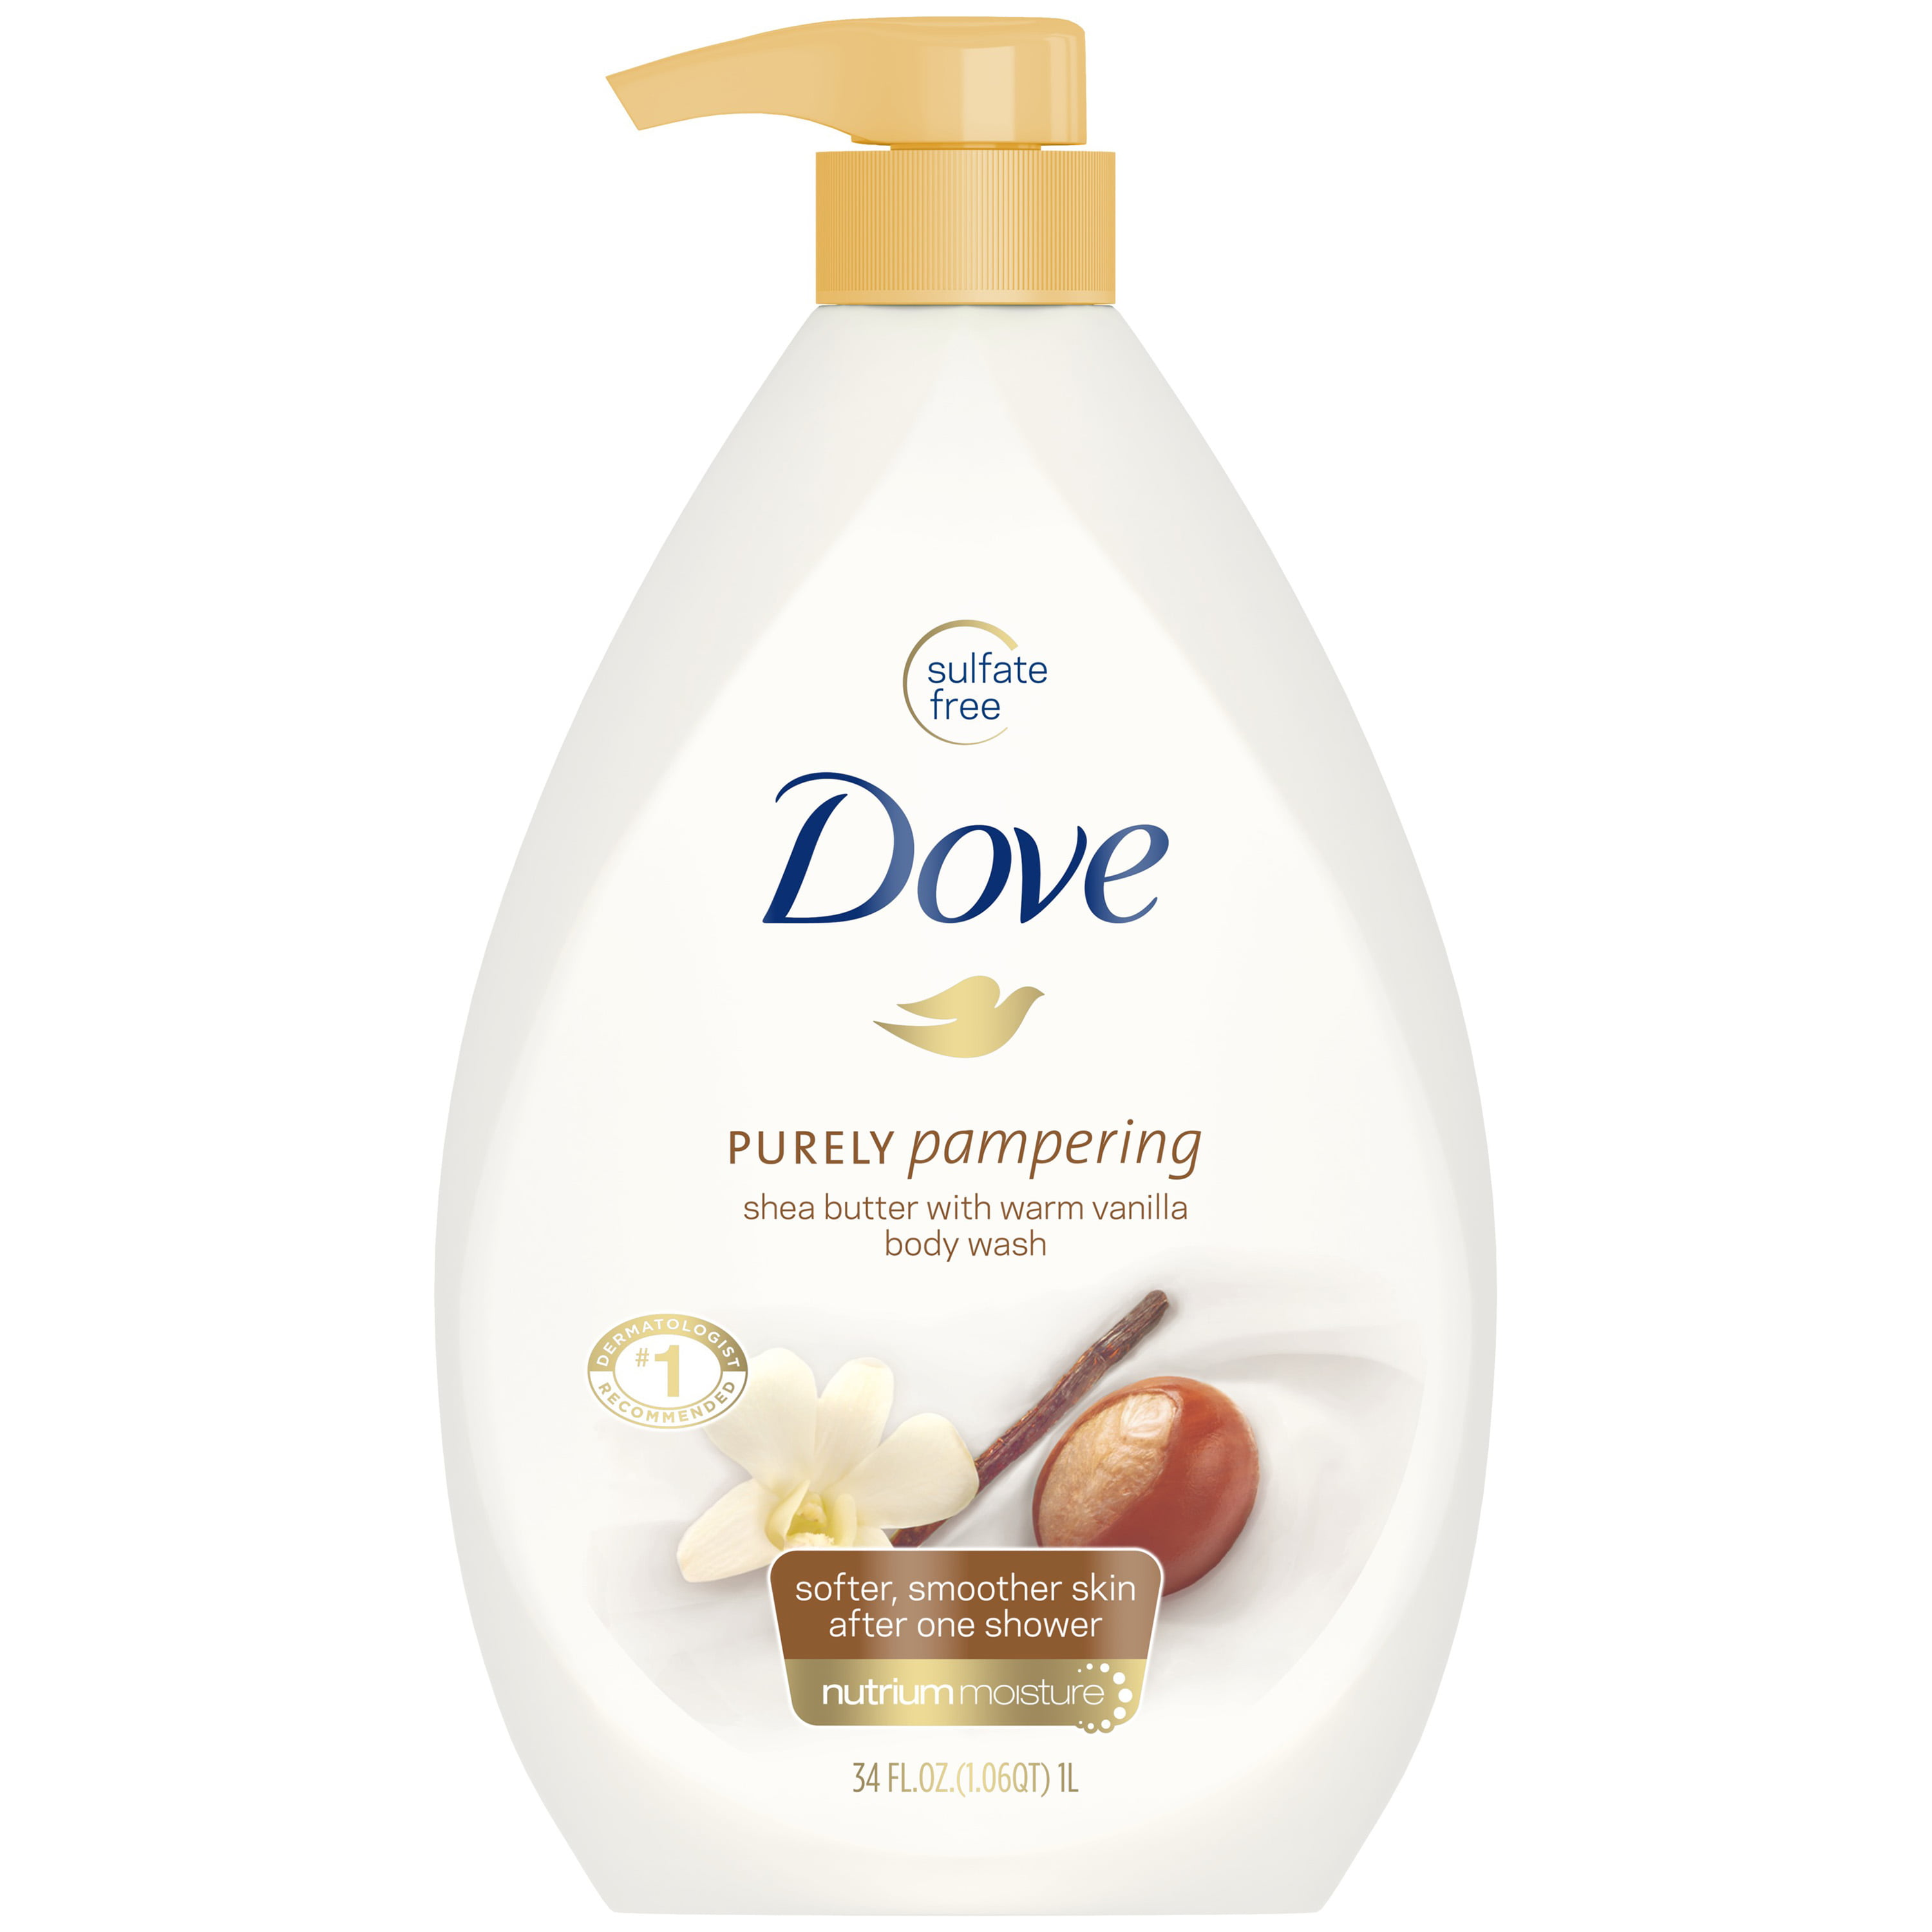 Dove Purely Pampering Body Wash Pump Shea Er With Warm Vanilla 34 Oz